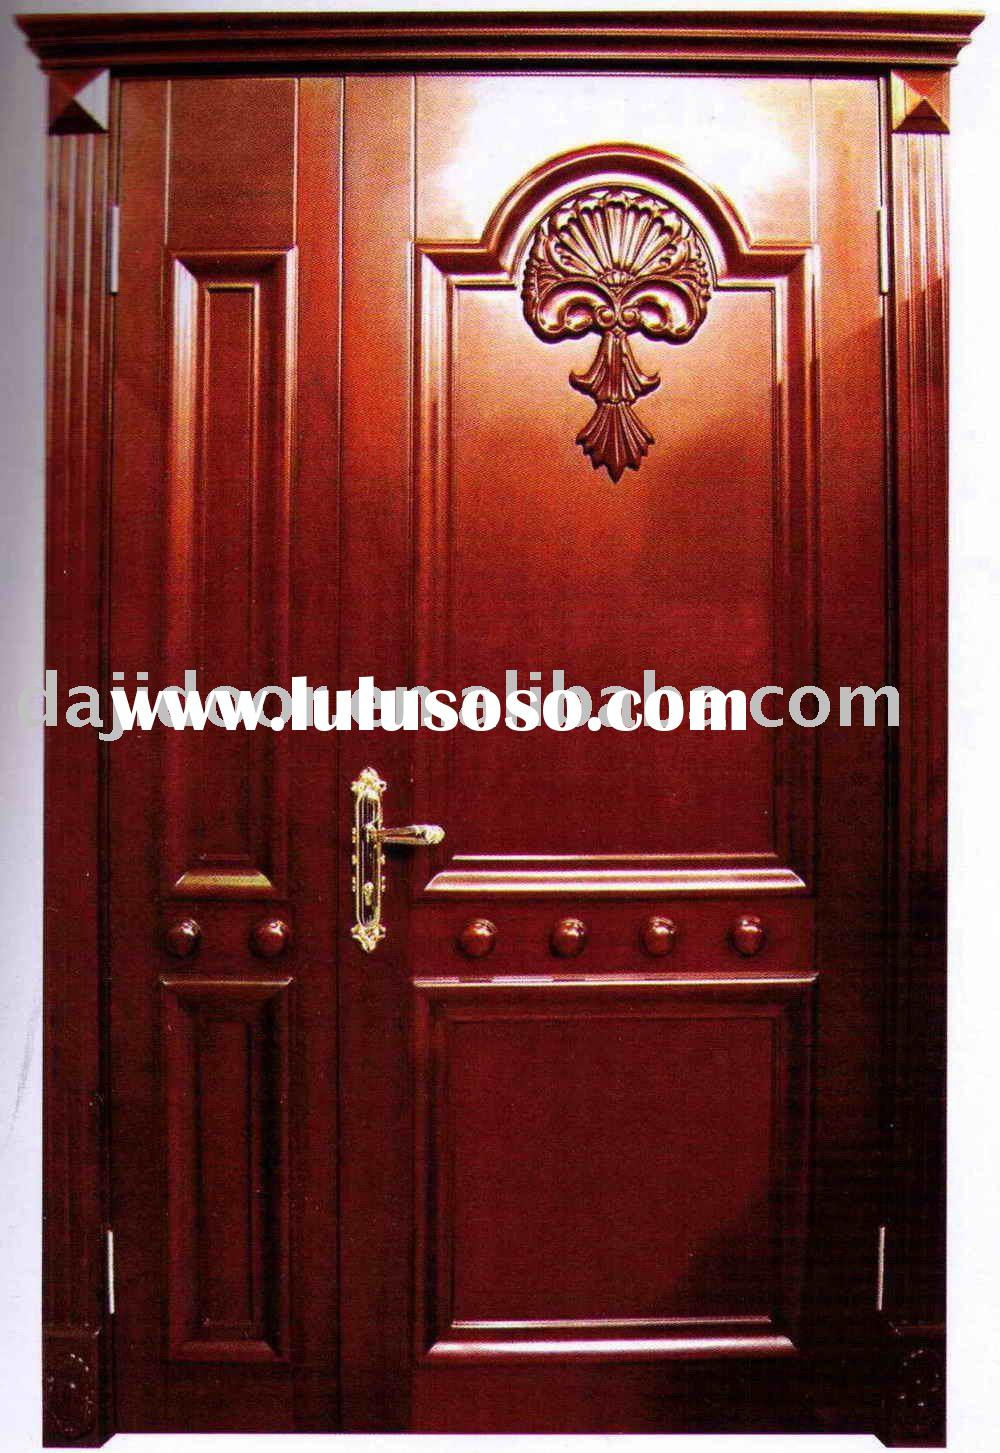 Indian main doors photos indian main doors photos for Main door designs for indian homes